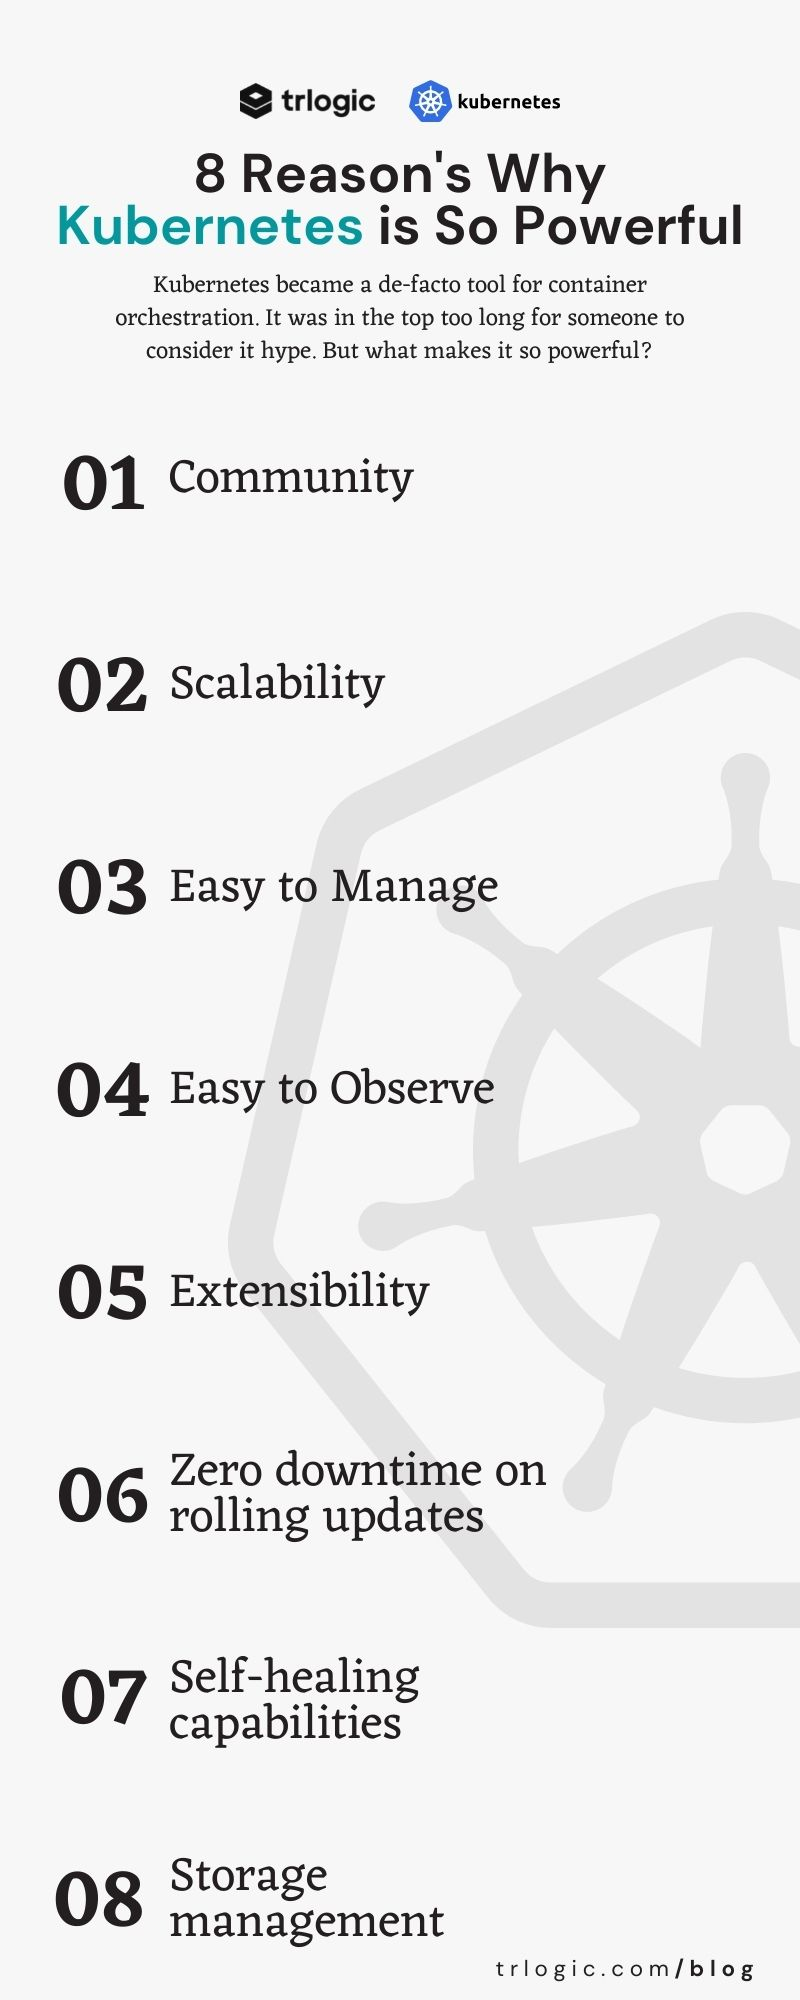 what makes k8s so powerful. 1 community, 2 scalability, 3 easy to manage, 4easy to observe, 5 extensibility, 6 zero downtime, 7 self healing capabilities, 8 store management